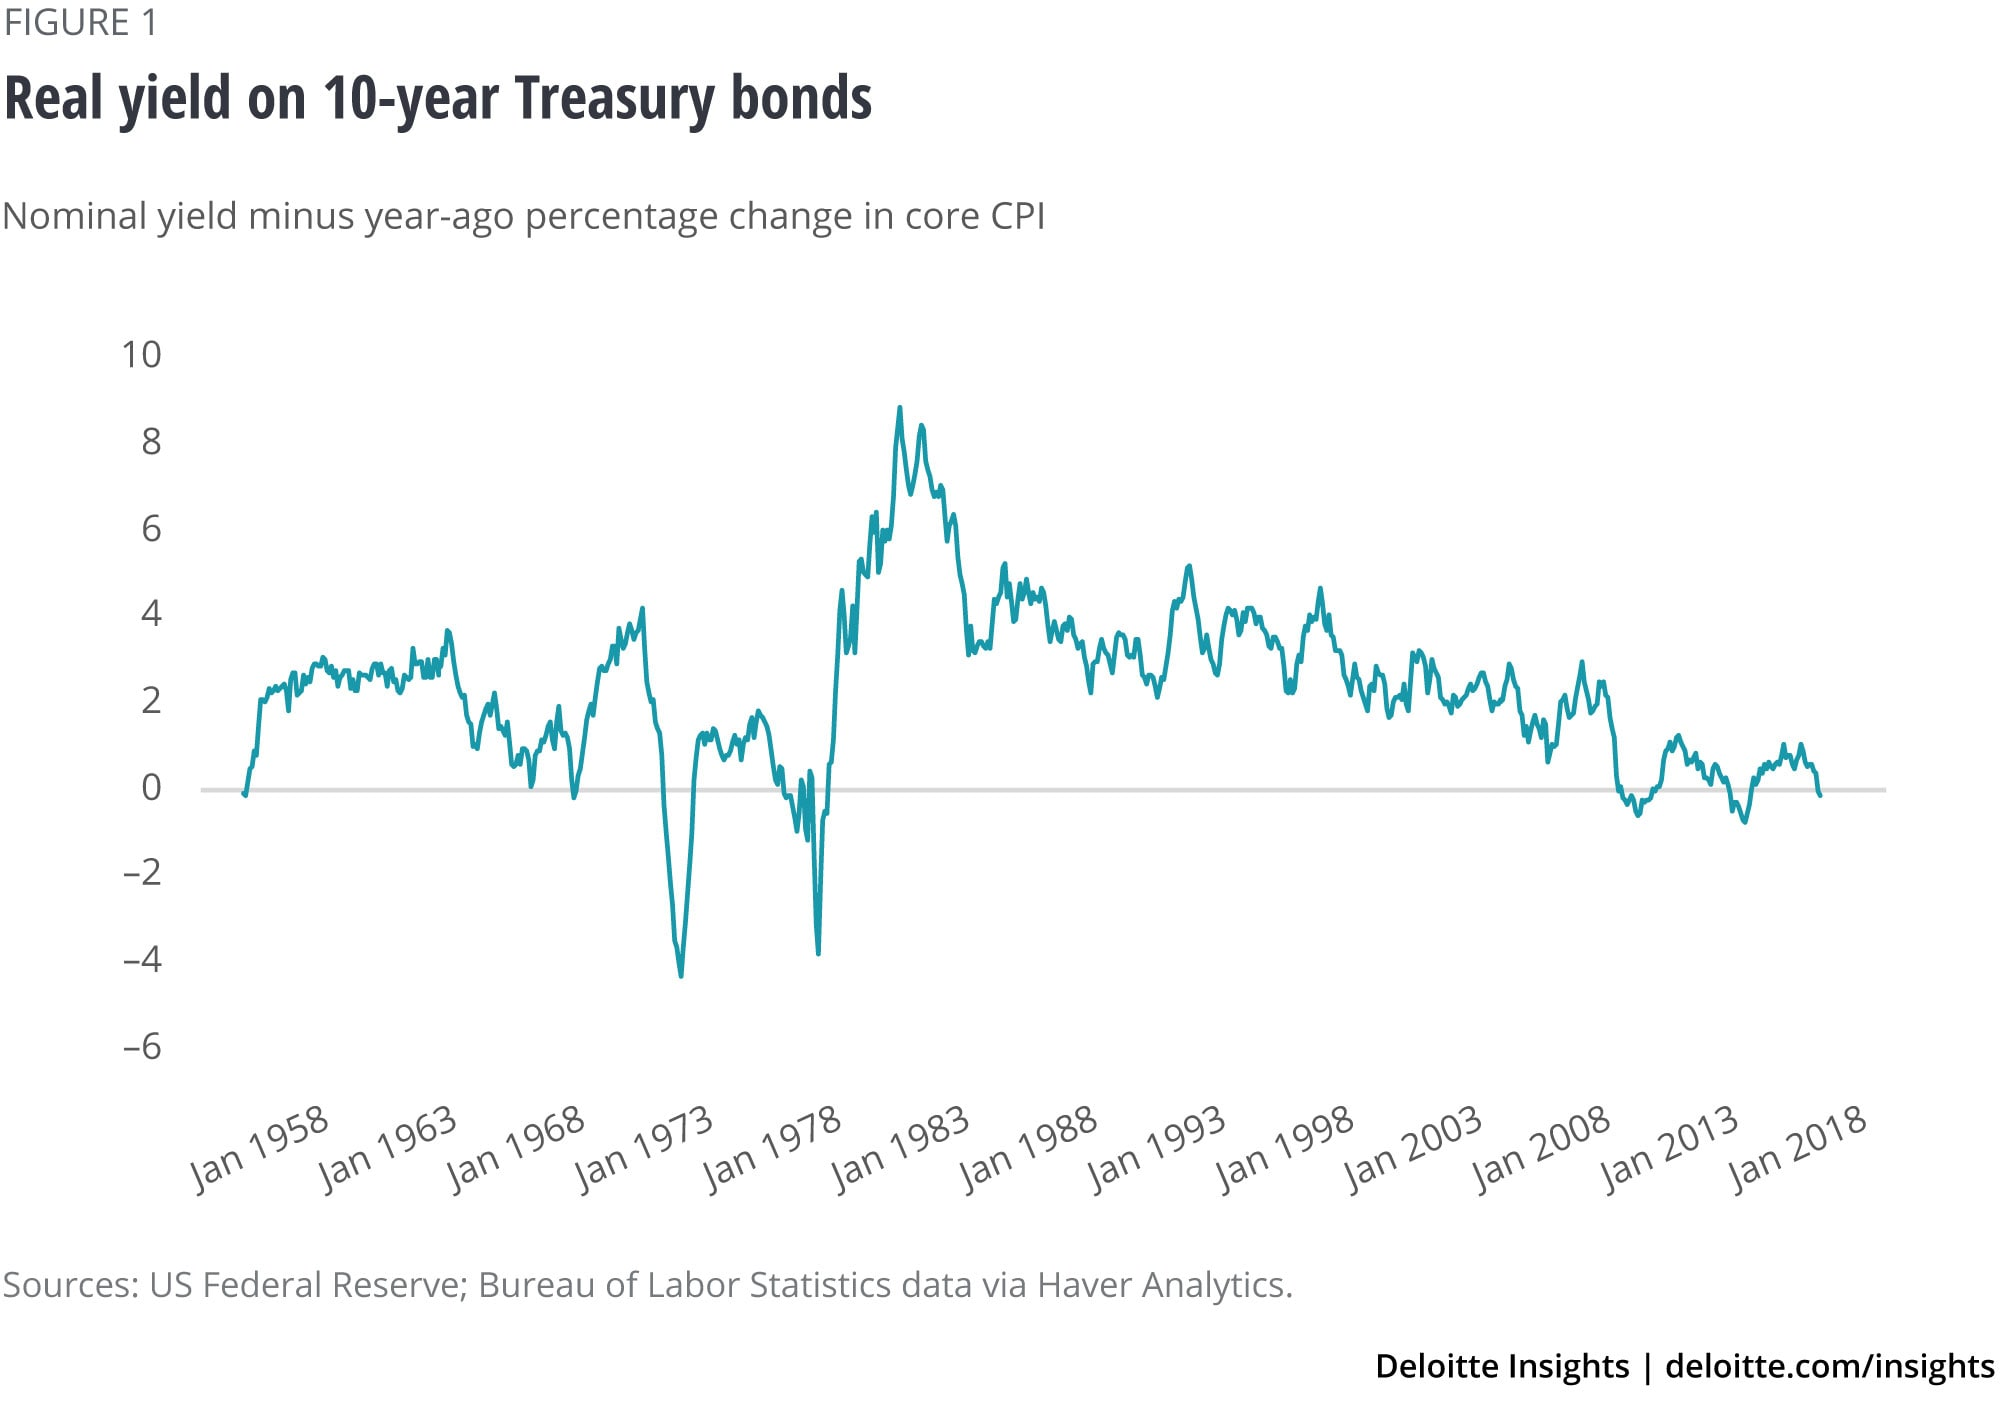 Real yield on 10-year Treasury bonds